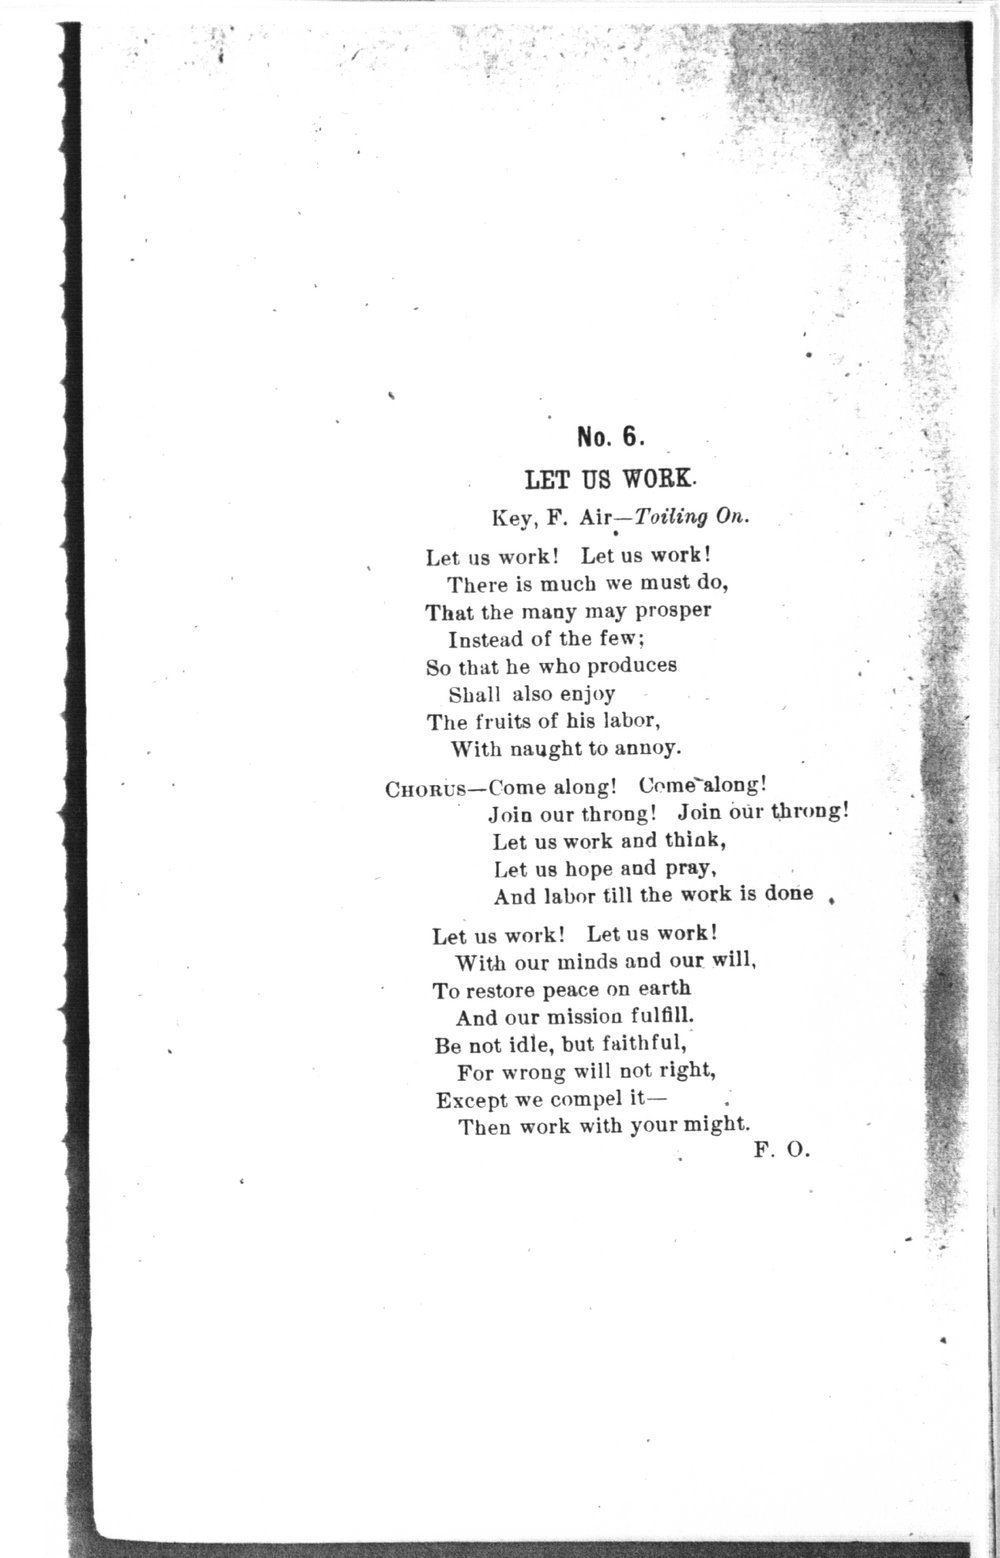 The mite:  Farmers' and Laborers' Union songs for national, state, county and subordinate unions - No. 6